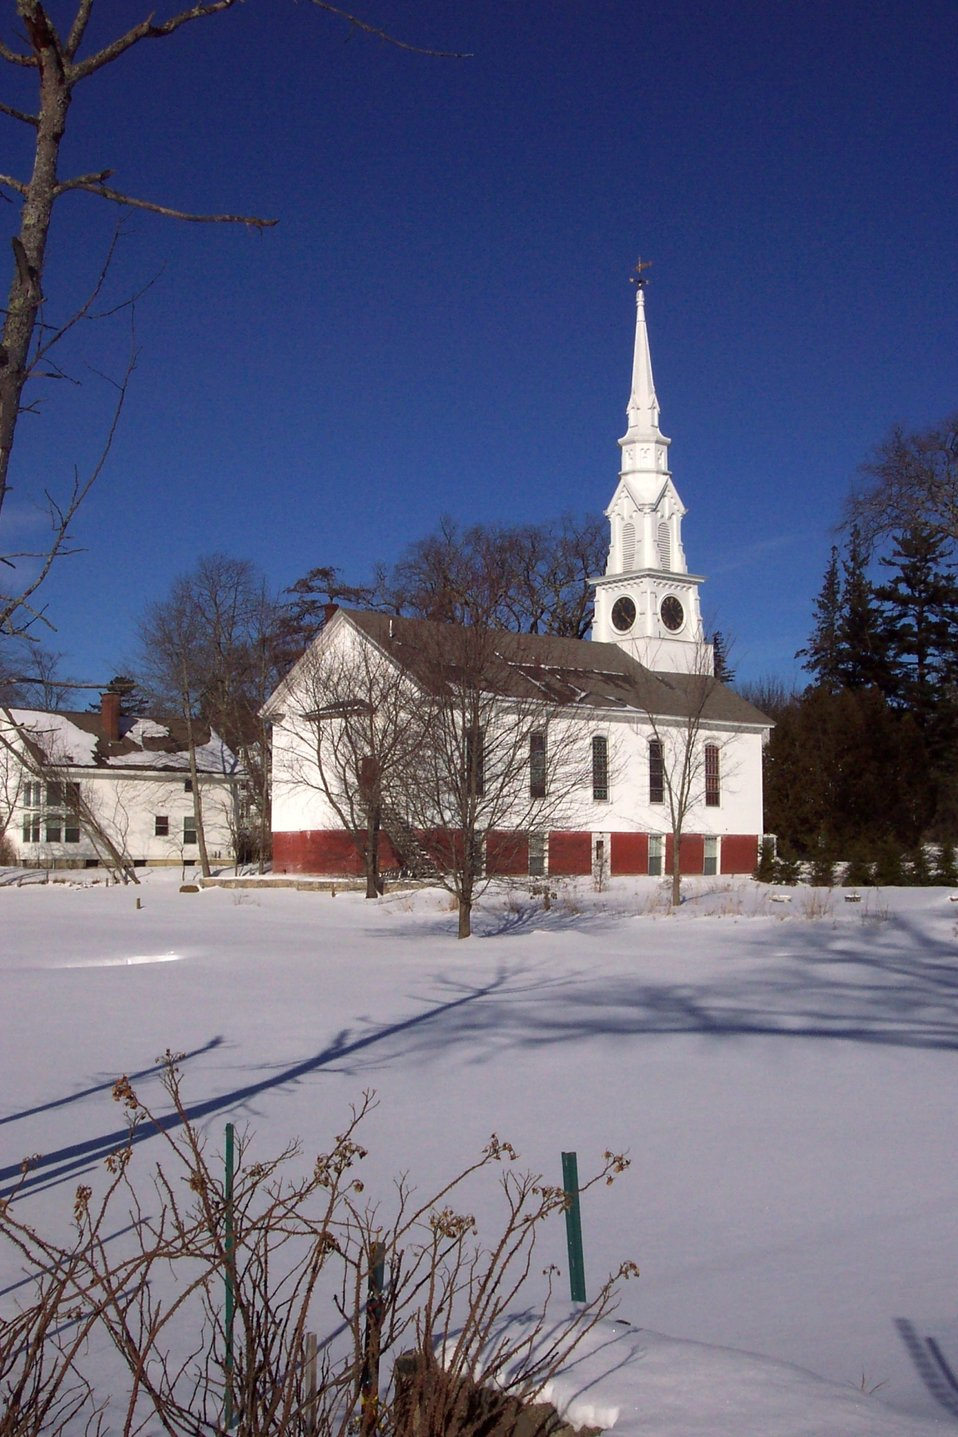 A beautiful New England Church at Castine.  Note the fish-shaped weather vane on the steeple.